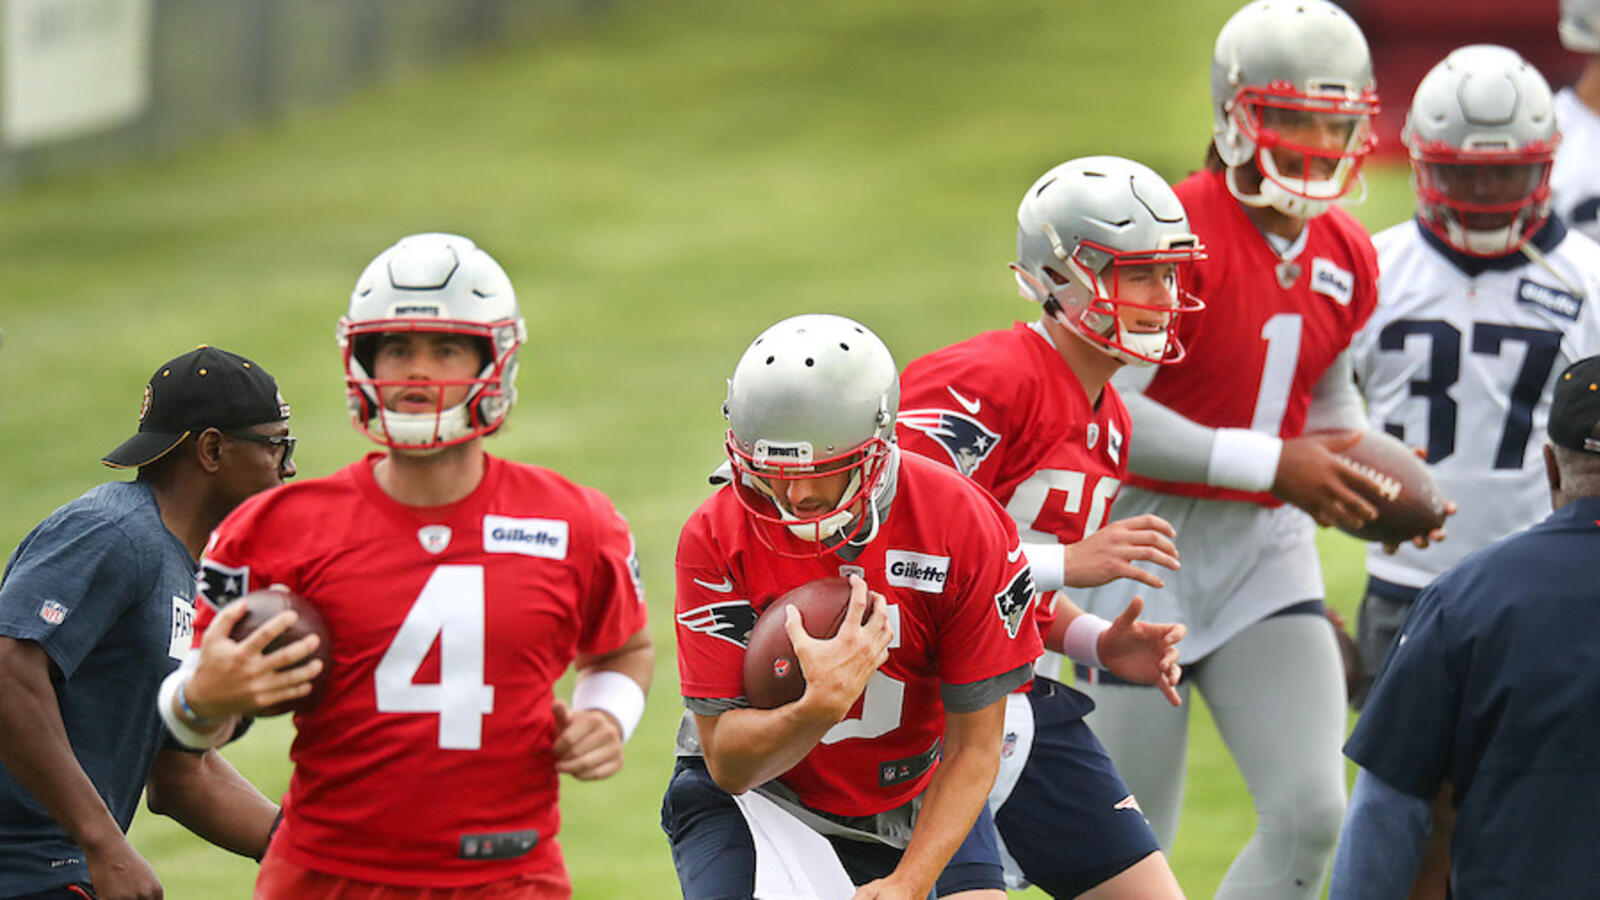 Patriots Quarterback To Miss A 'Little Time' Due To Injury